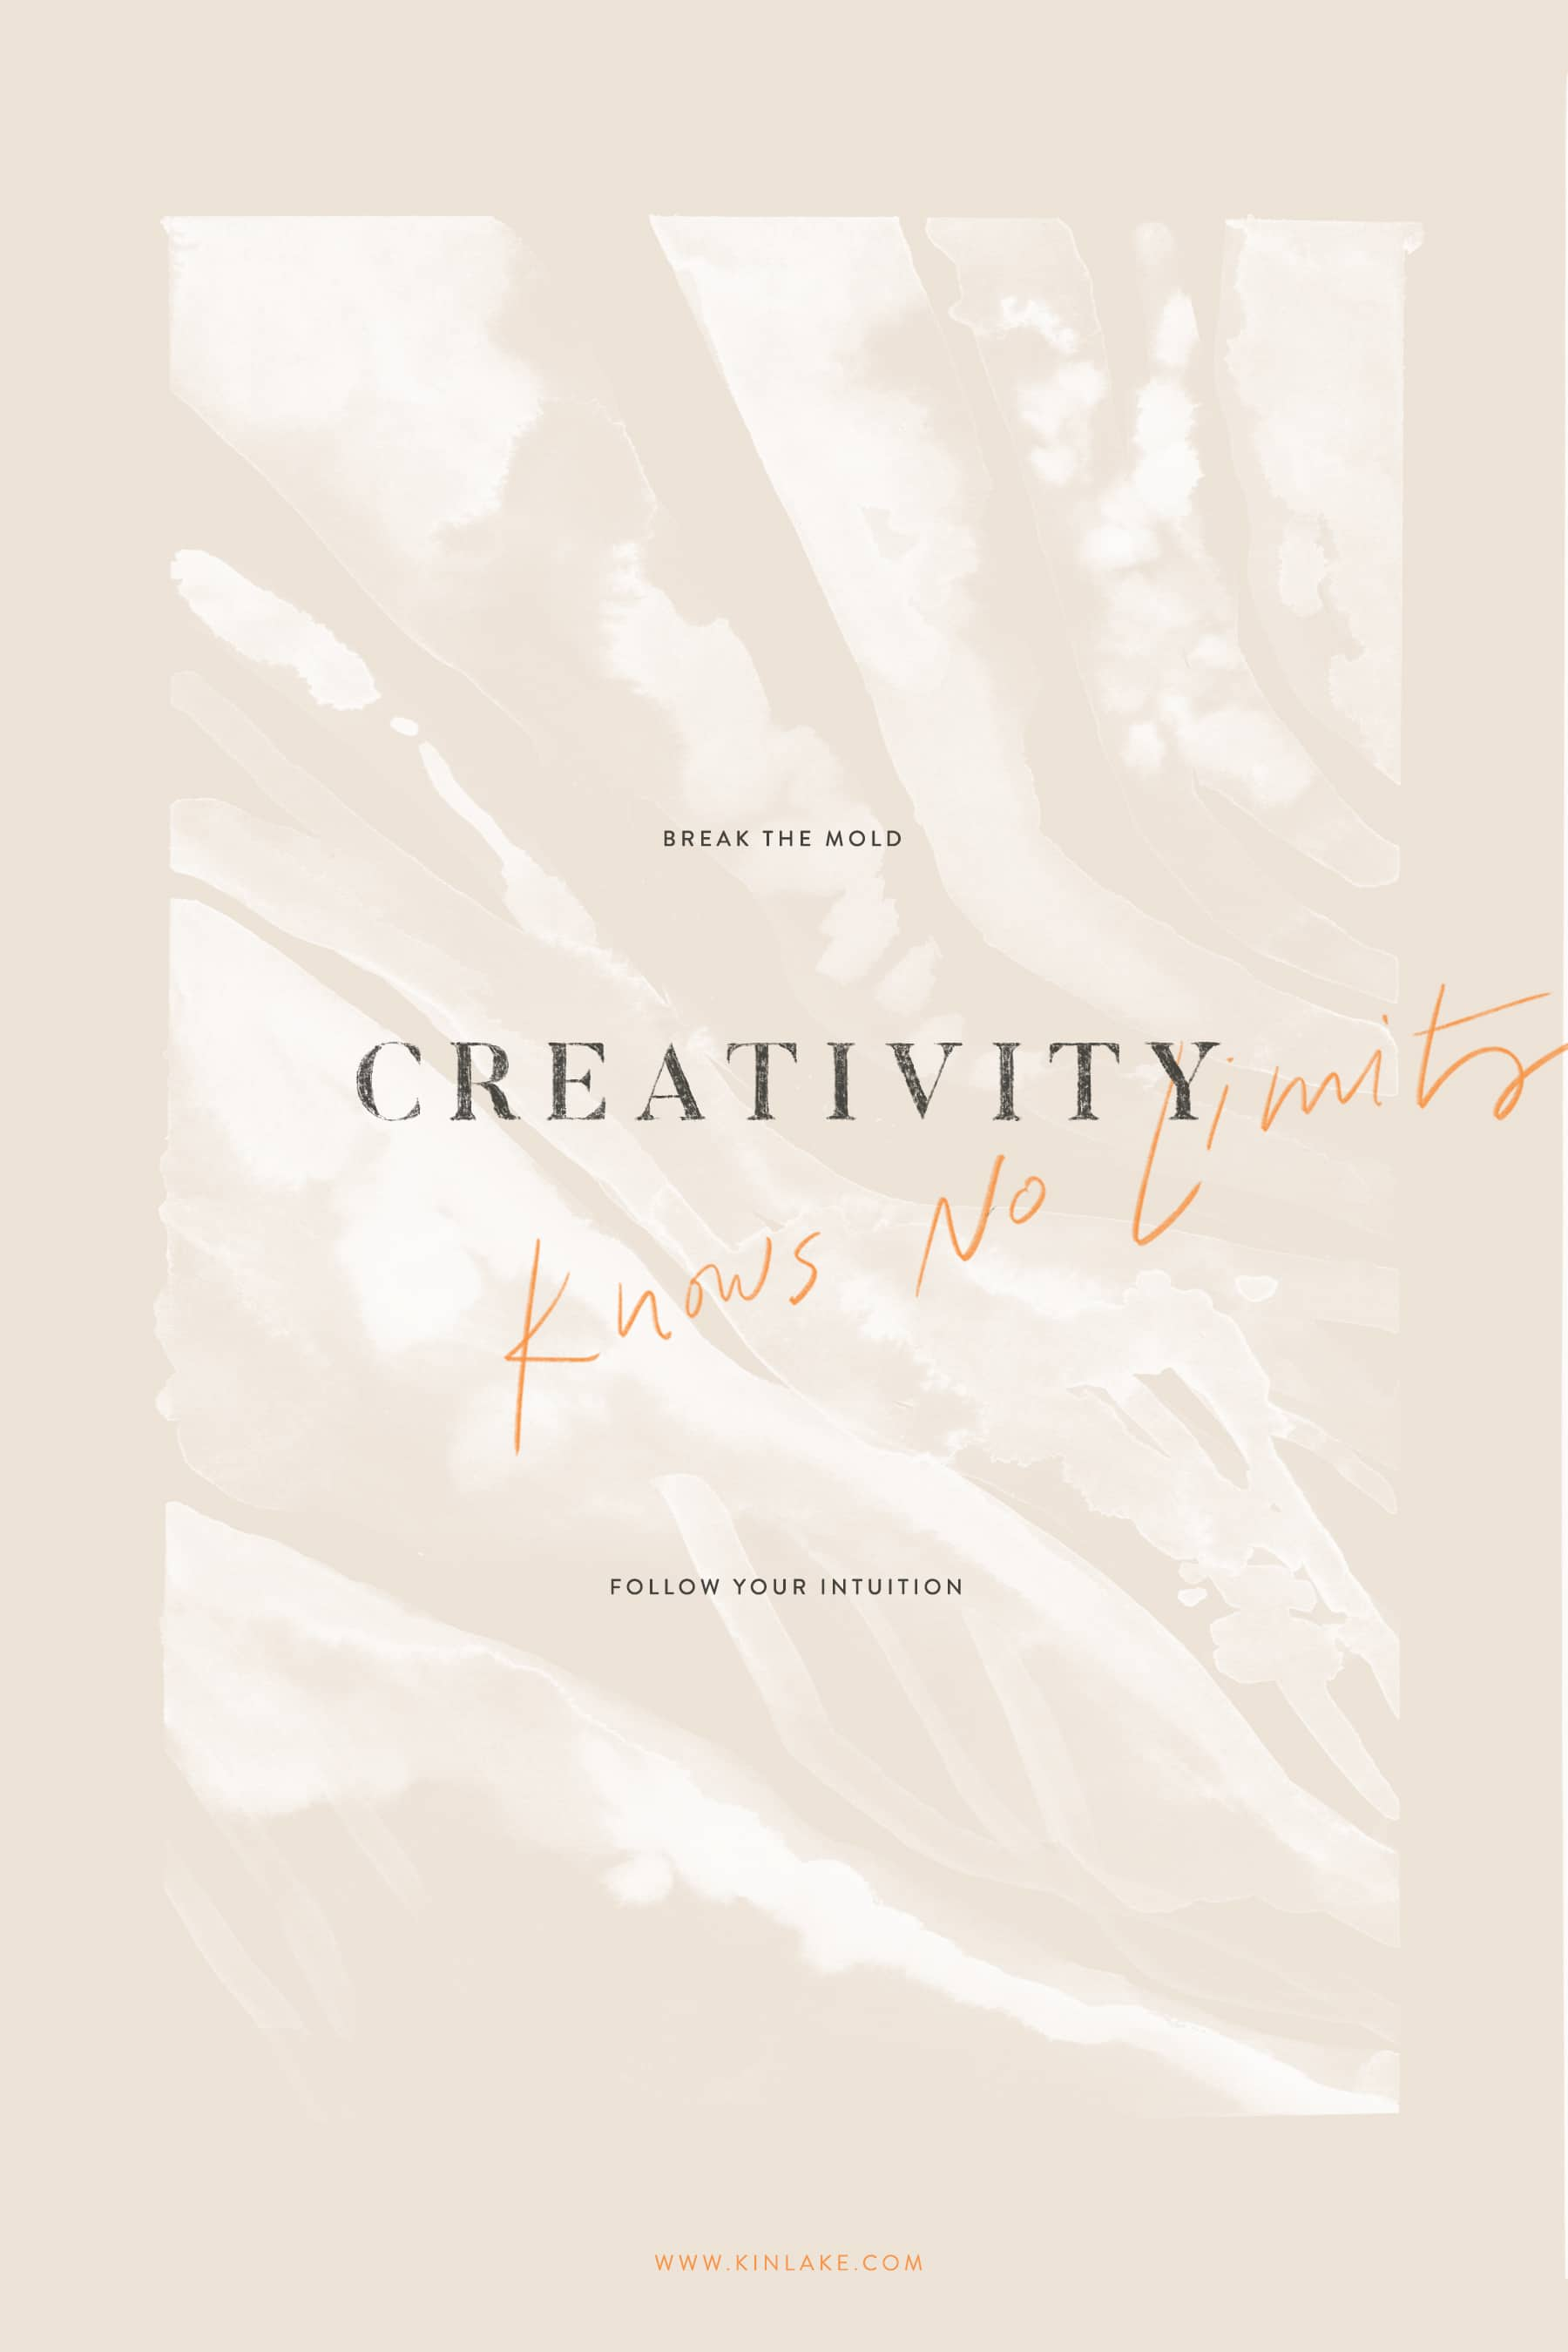 Creativity-Knows-No-Limits-Breaking-The-Mold-05